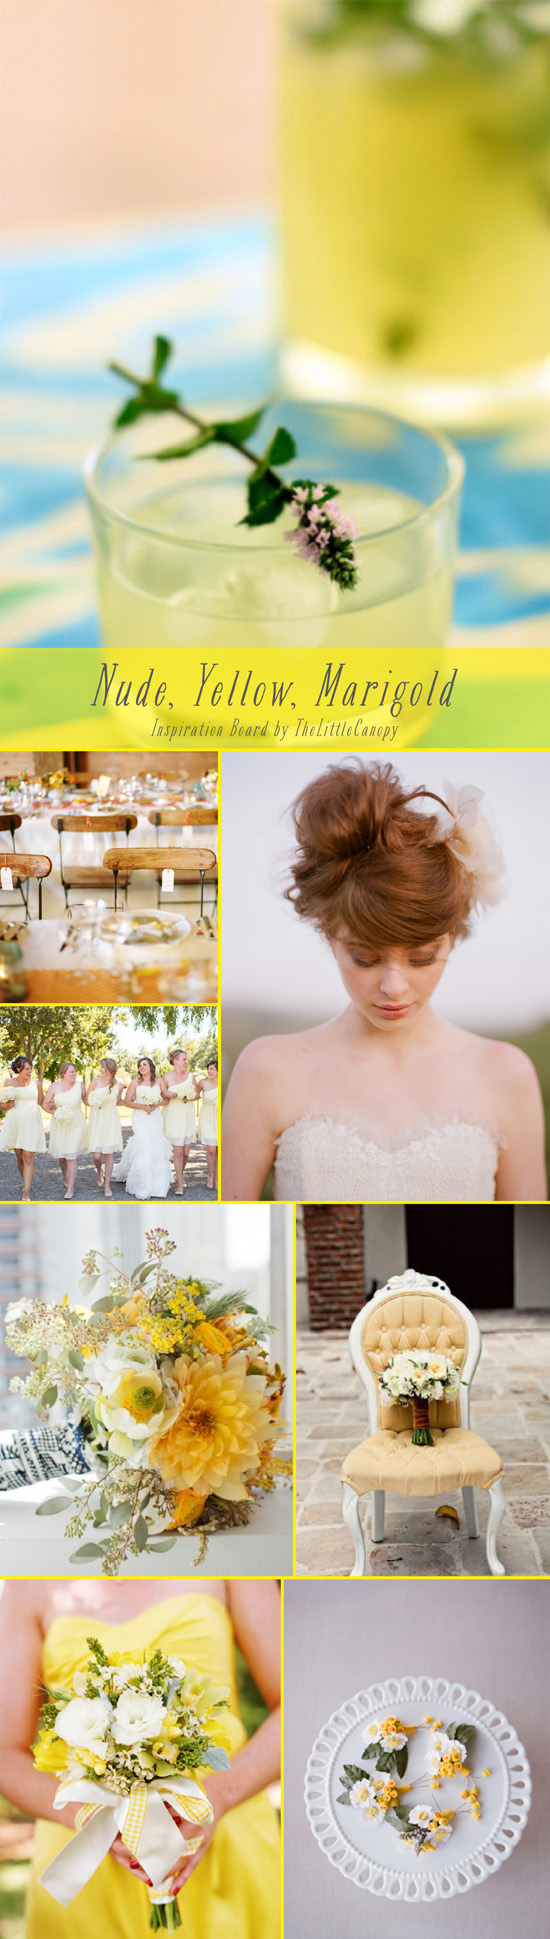 wedding-inspiration-board-shades-of-yellow-nude-marigold